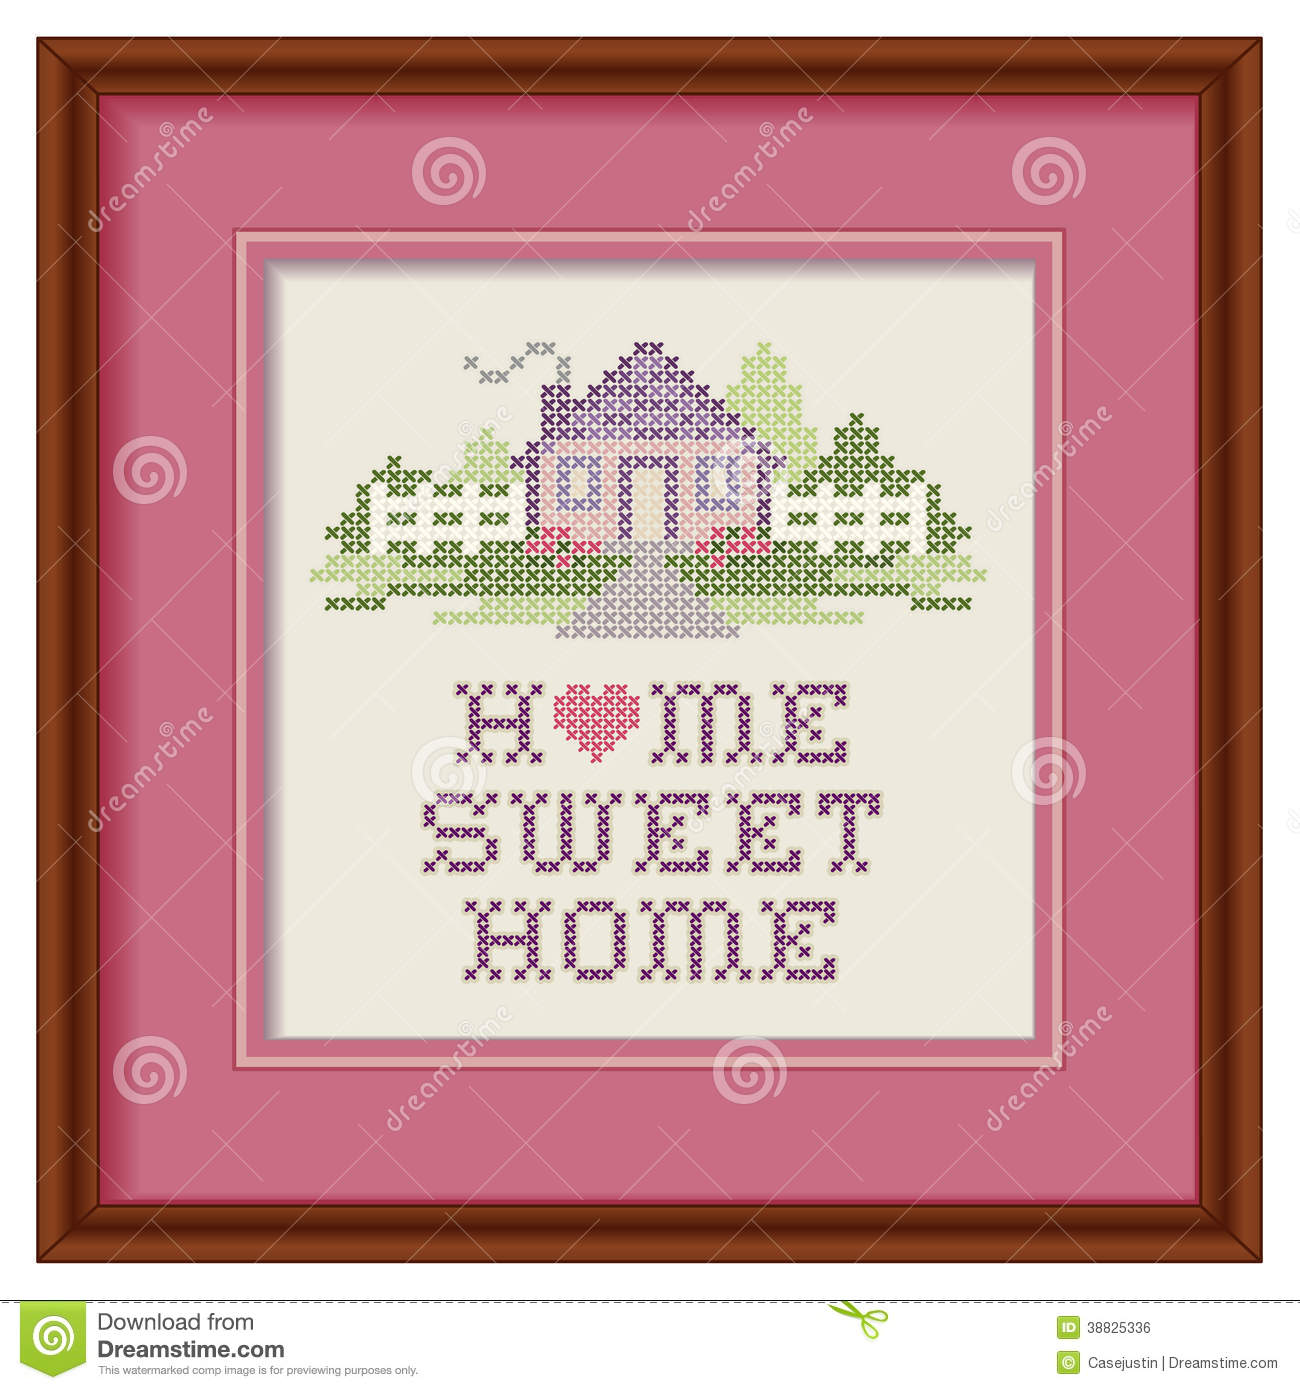 Embroidery Home Sweet Home Cross Stitch Wood Frame. Mahogany Wood Picture  Frame With Cross Stitch